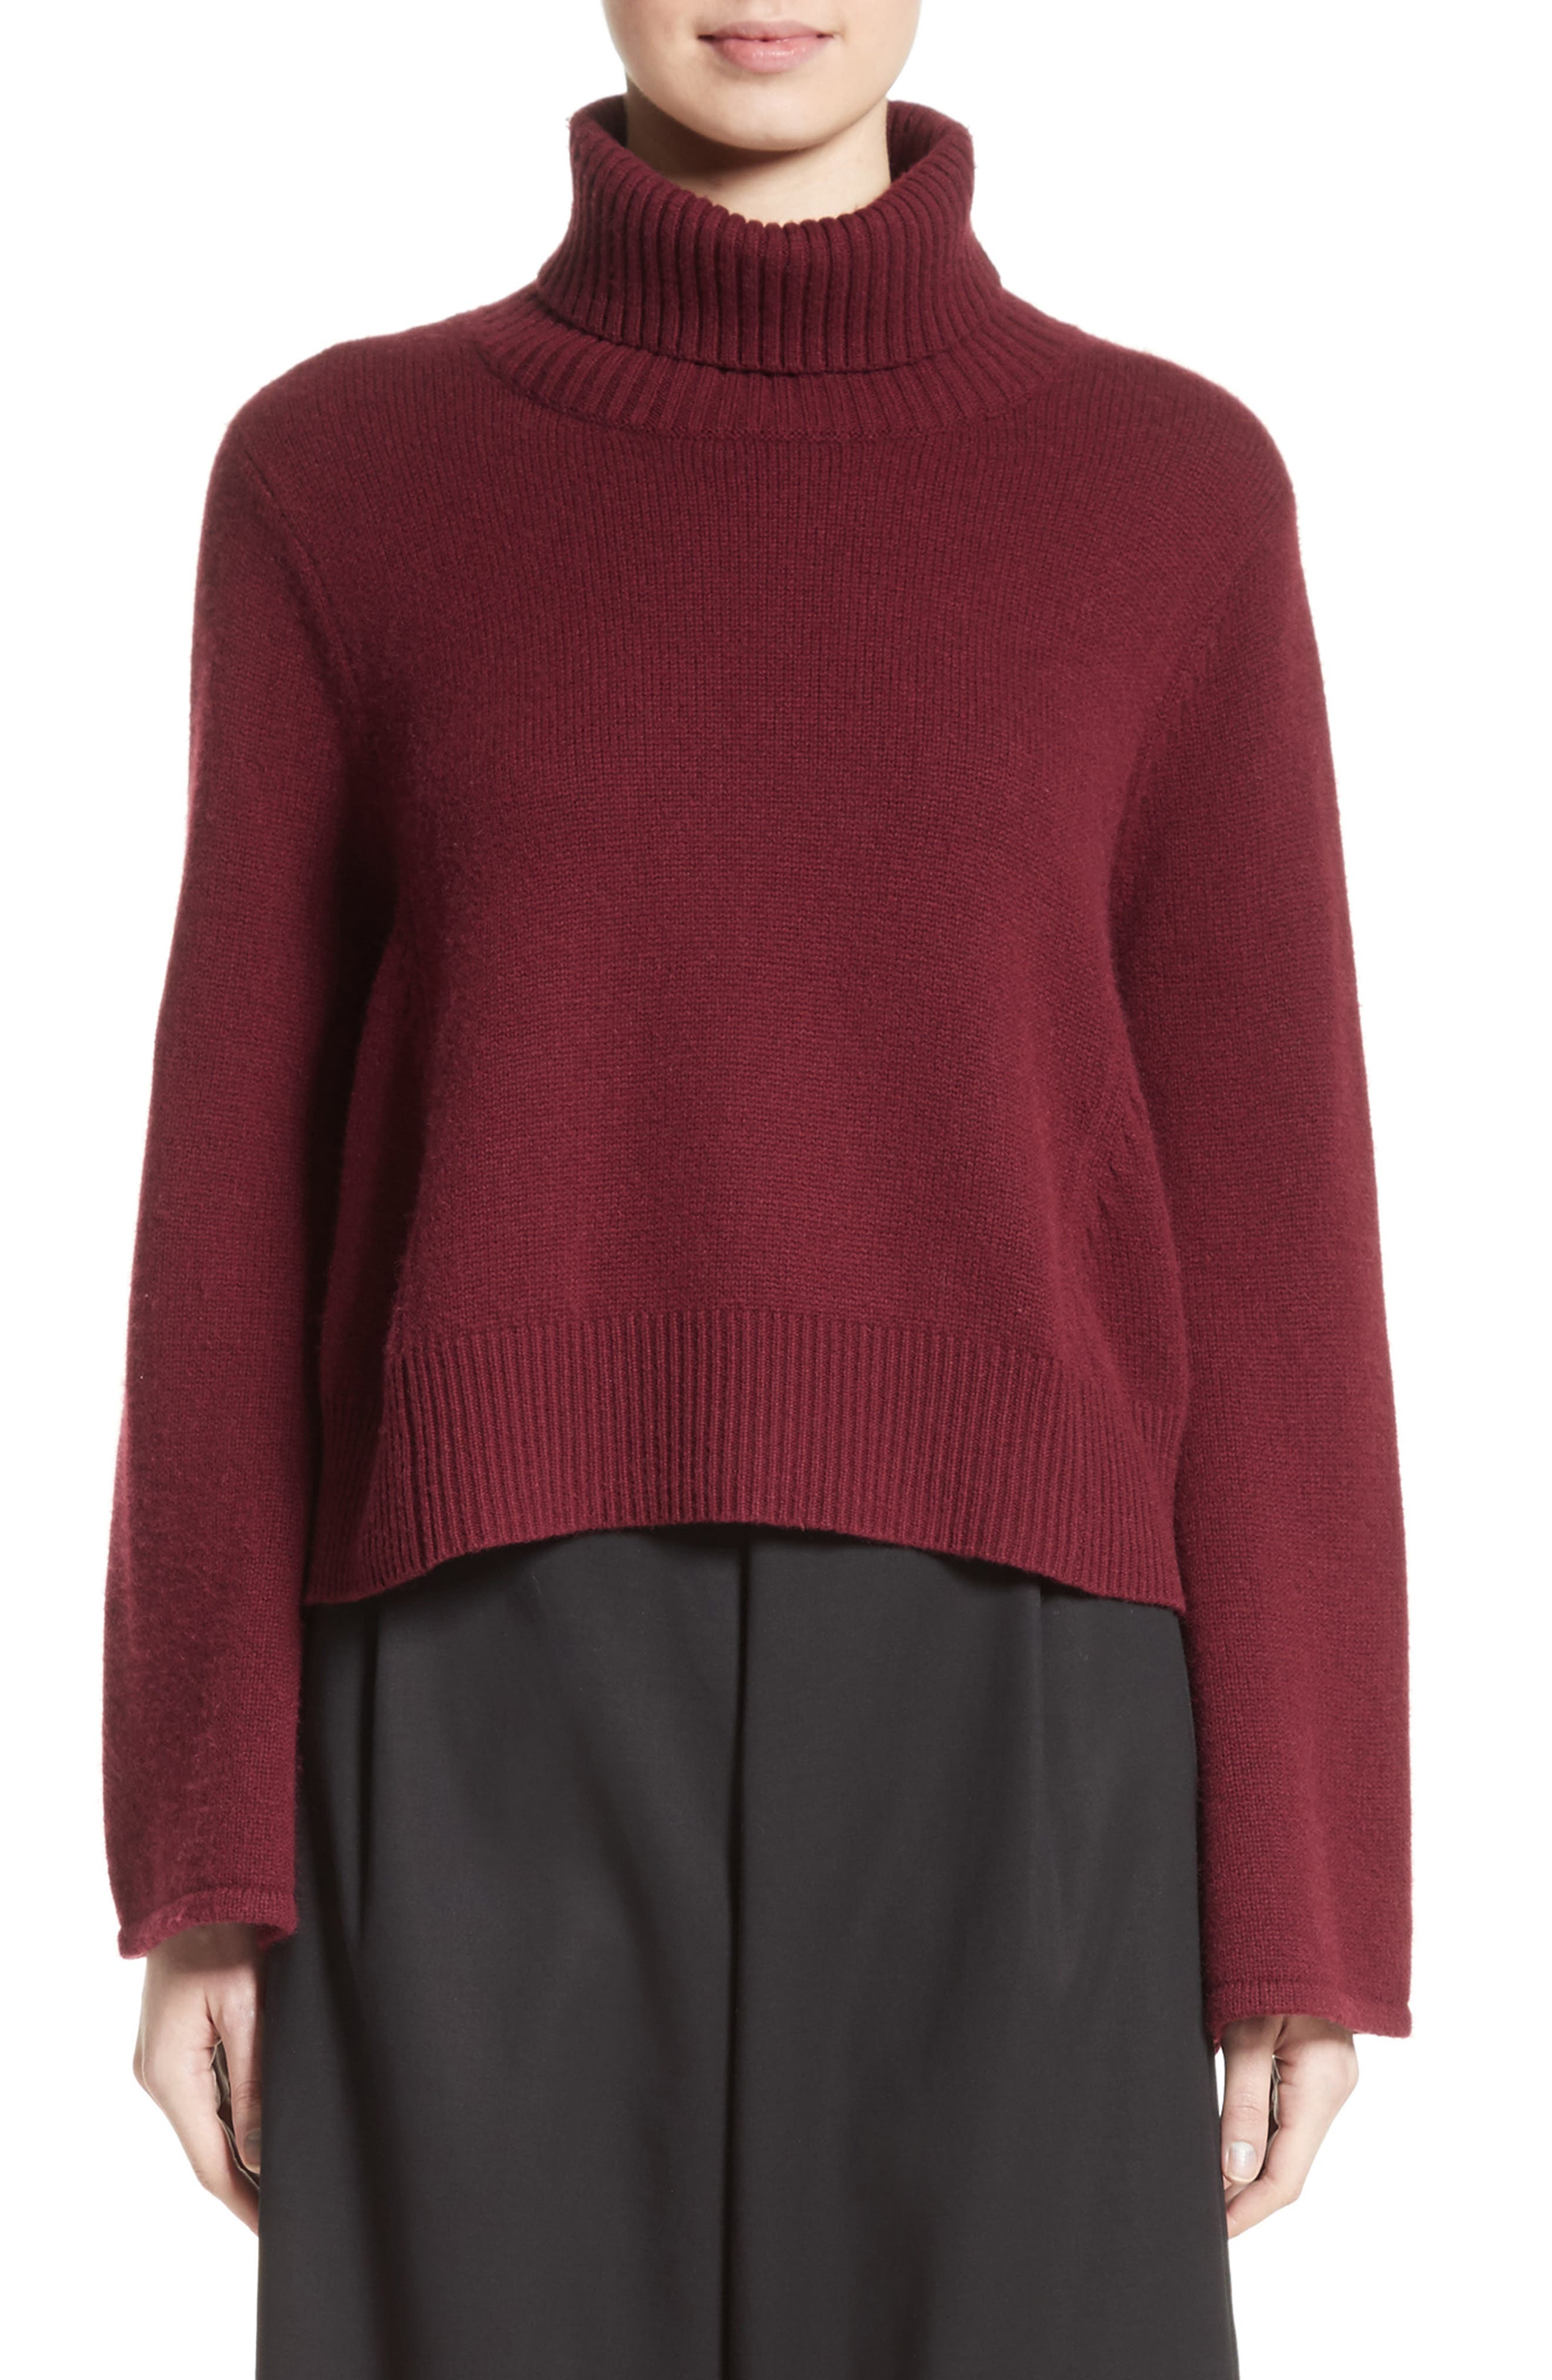 Bell Sleeve Wool & Cashmere Sweater,                         Main,                         color, 930